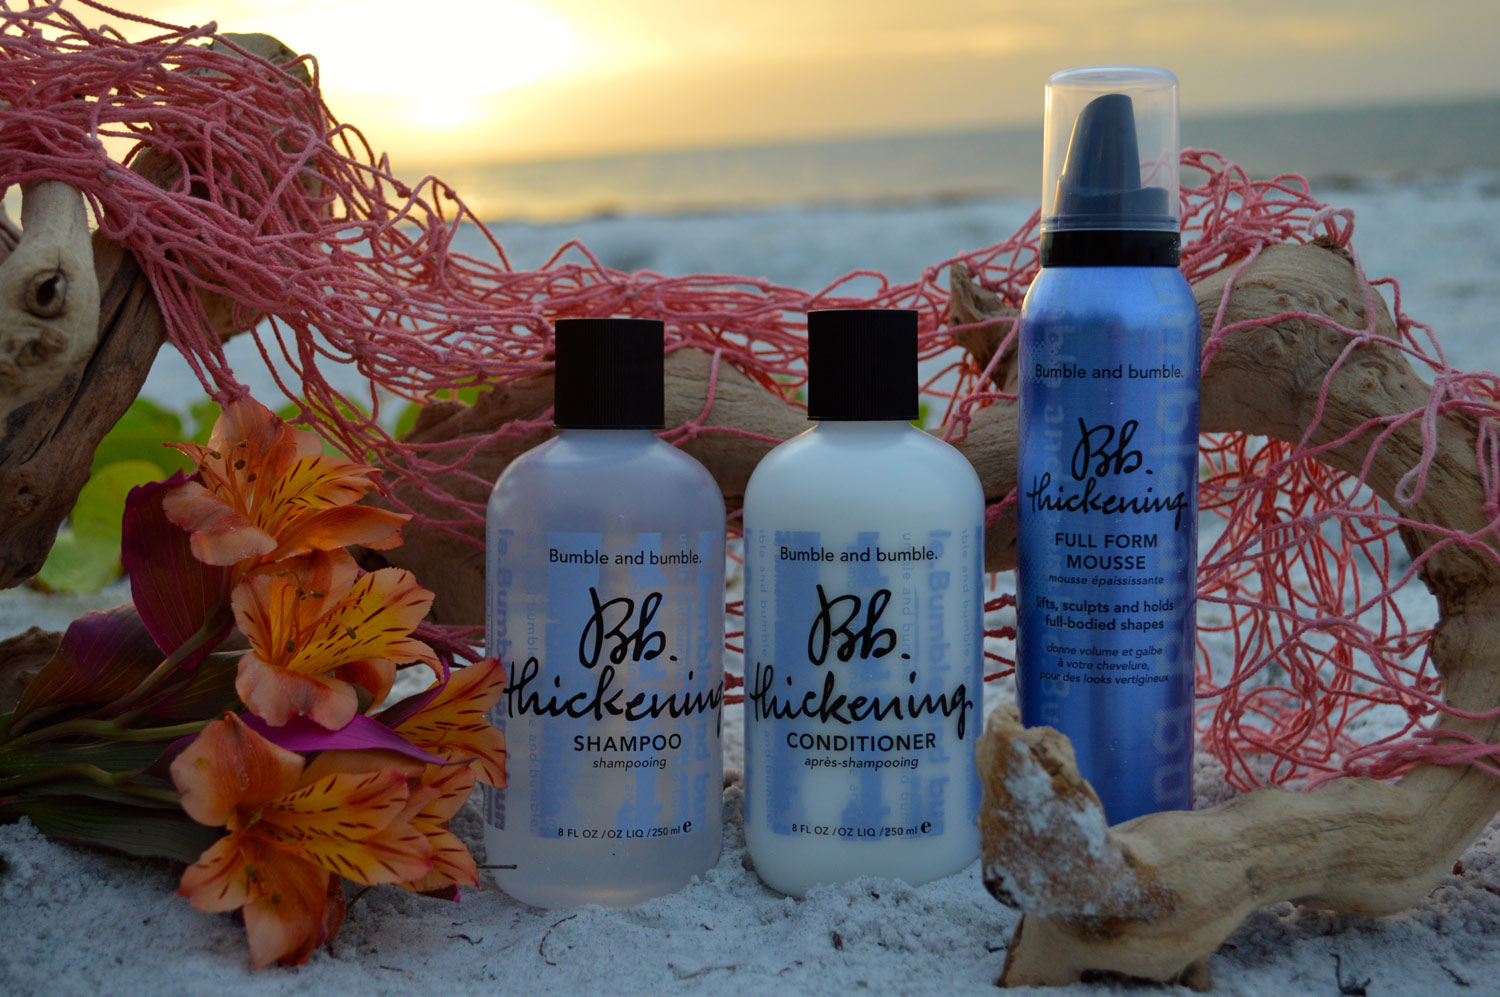 Anna maria island salon spa salon salon of ami - Bumble and bumble salon locator ...